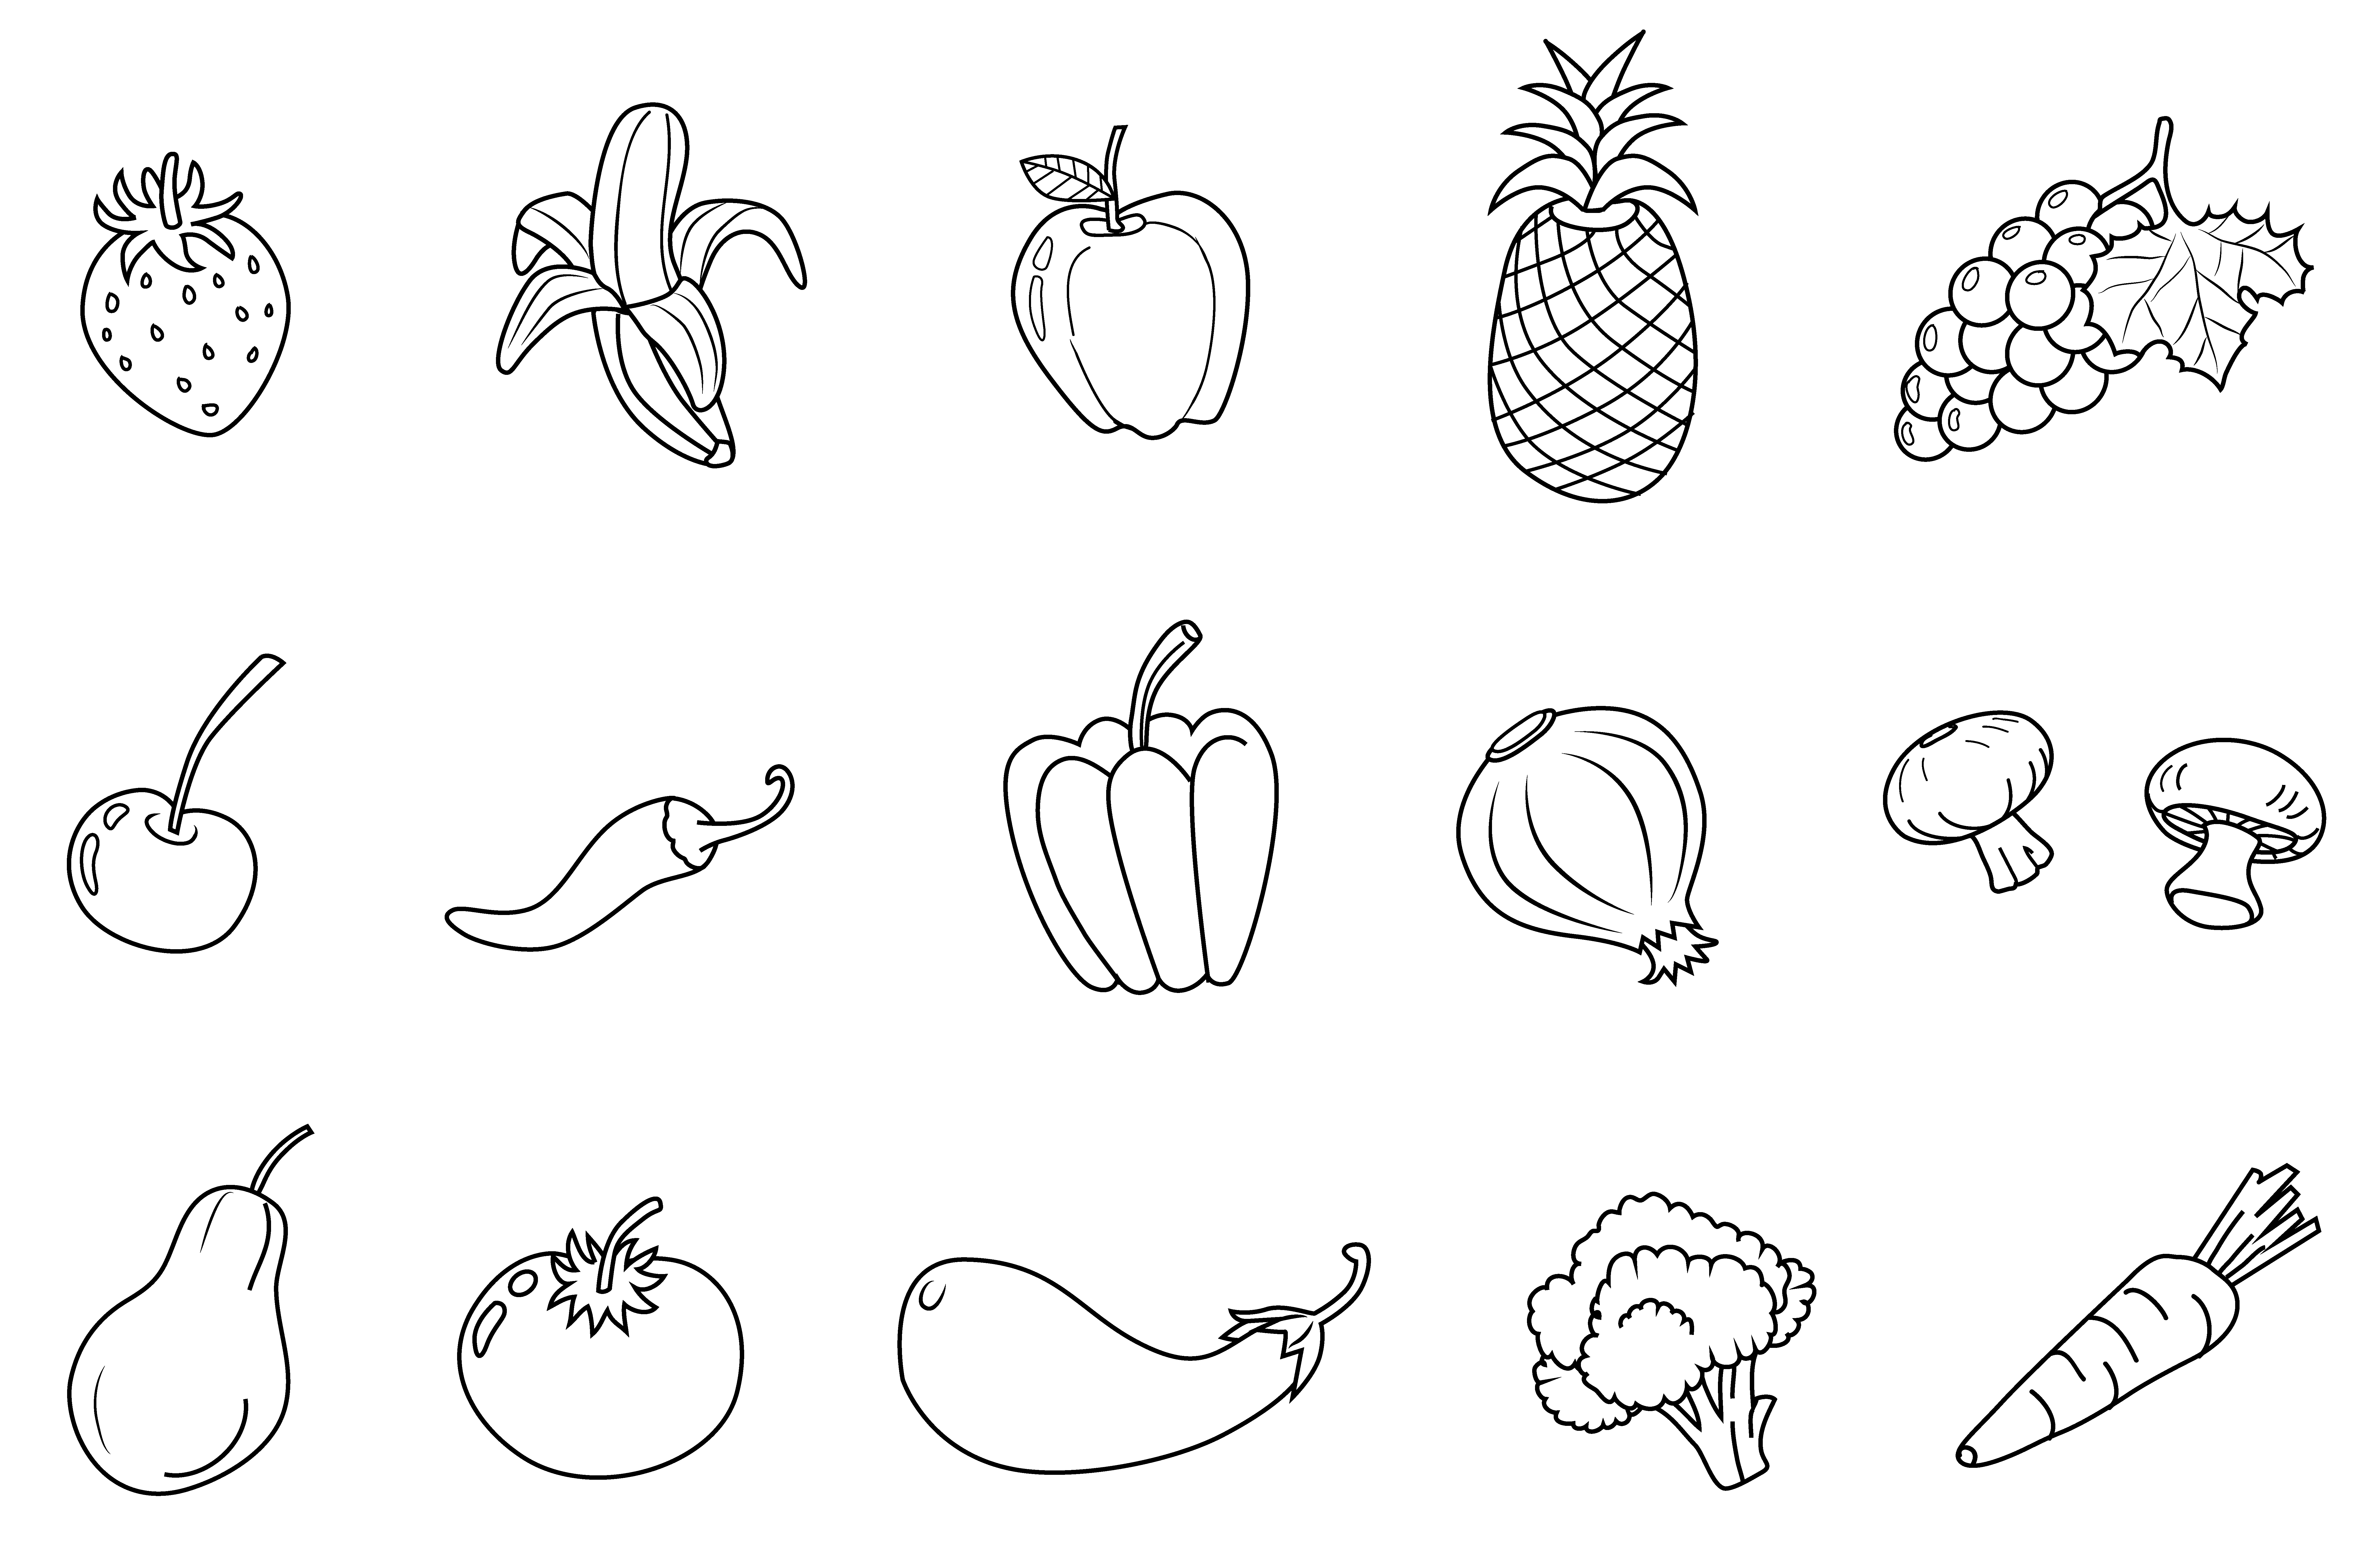 6 Best Images of Printable Vegetable Clip Art - Fruits and ...